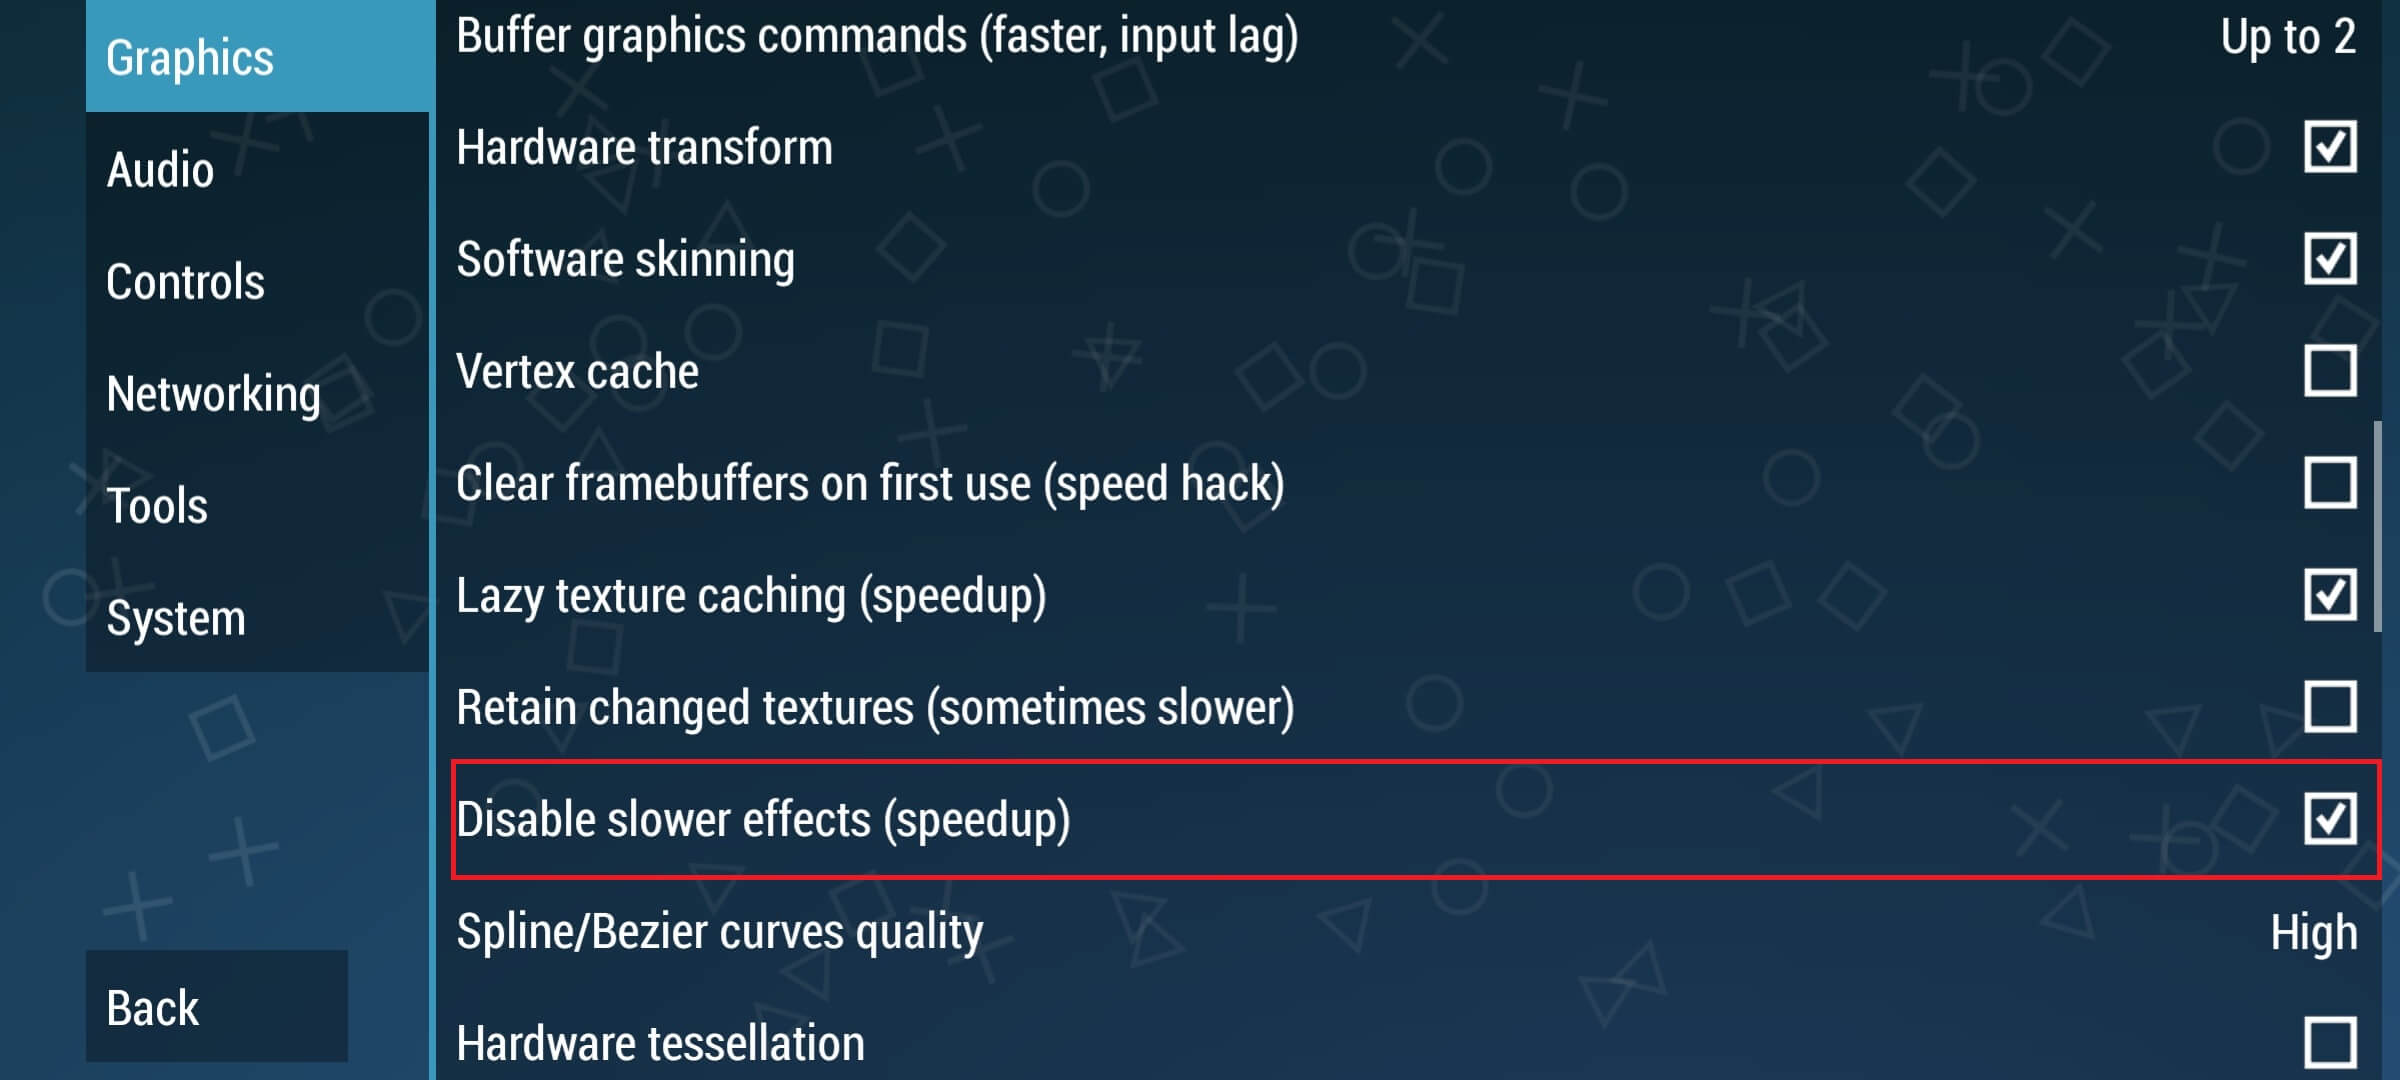 Disable slower effects PPSSPP